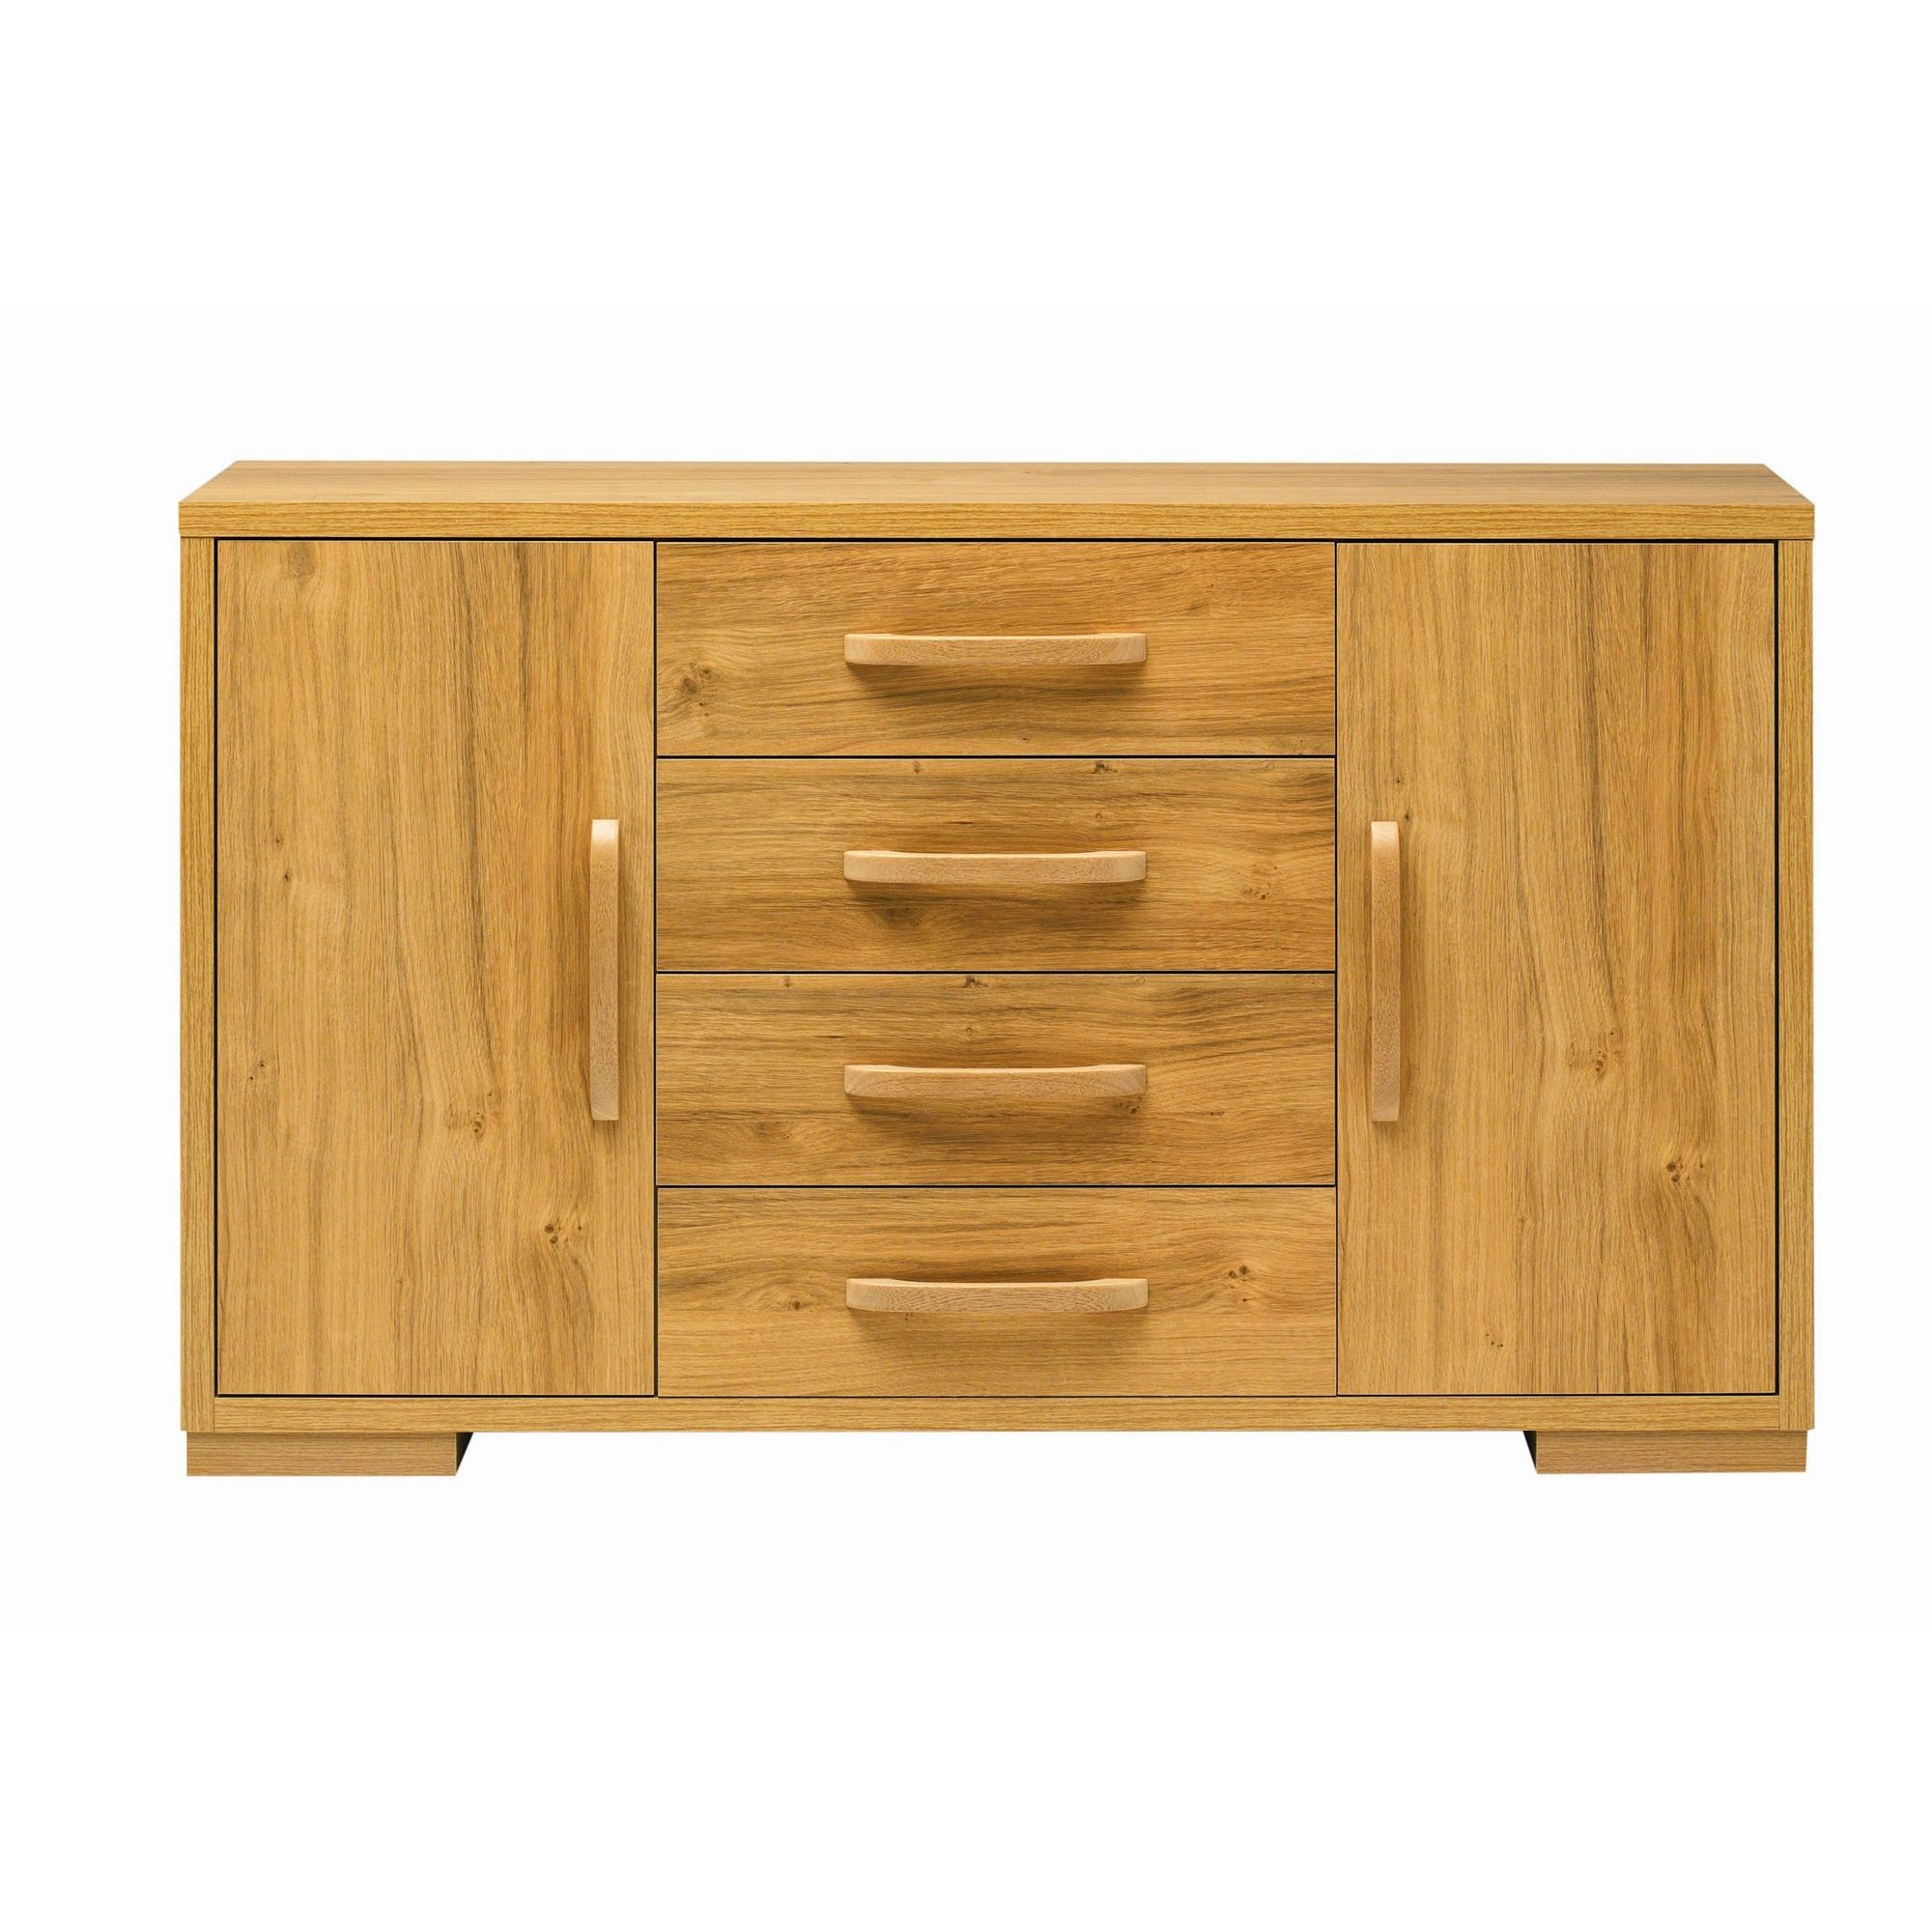 Caxton Strand High Sideboard in Oak at Tesco Direct